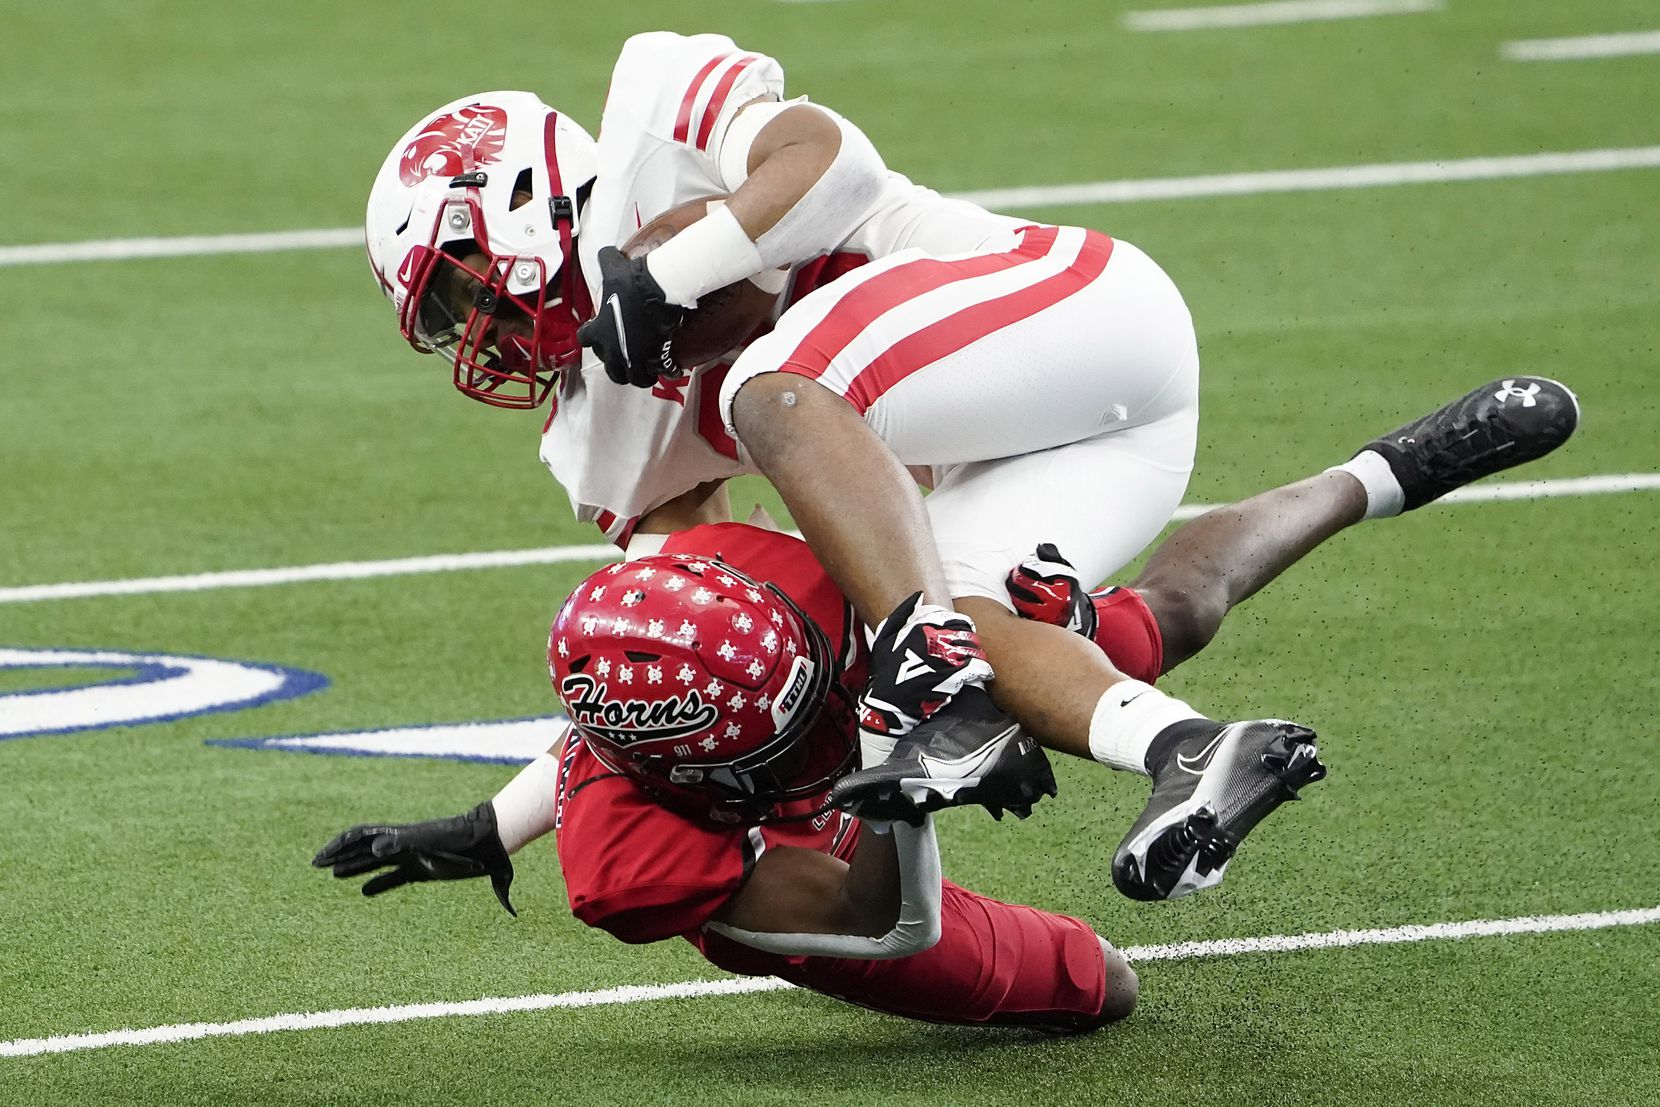 Katy running back Isaiah Smith (26) is knocked off his feet by Cedar Hill cornerback Amarian Williams (9) during the first half of the Class 6A Division II state football championship game at AT&T Stadium on Saturday, Jan. 16, 2021, in Arlington, Texas.